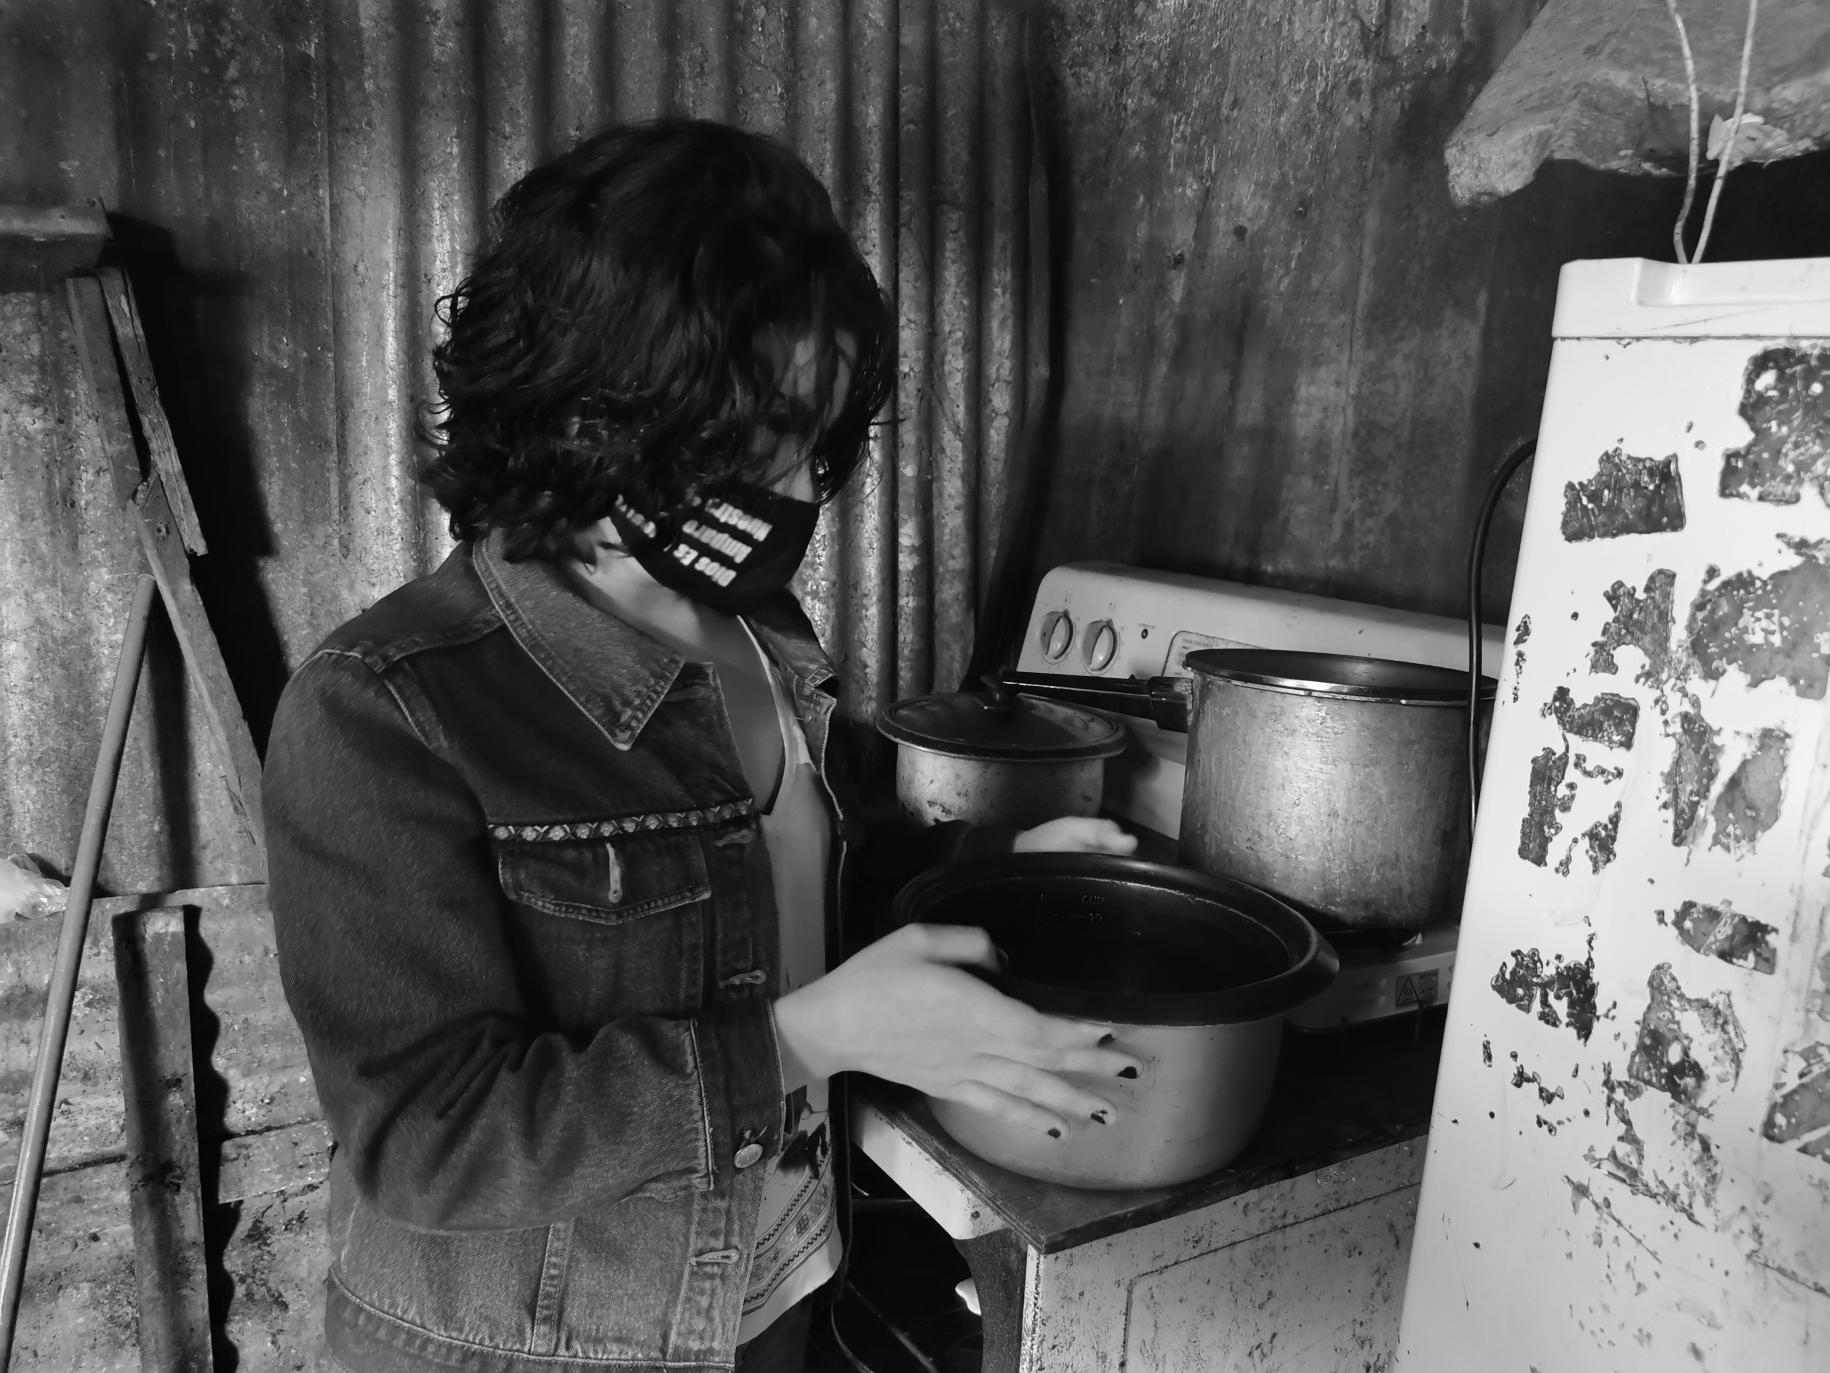 Lilith wearing a face mask sets a pot on the stove in her kitchen.